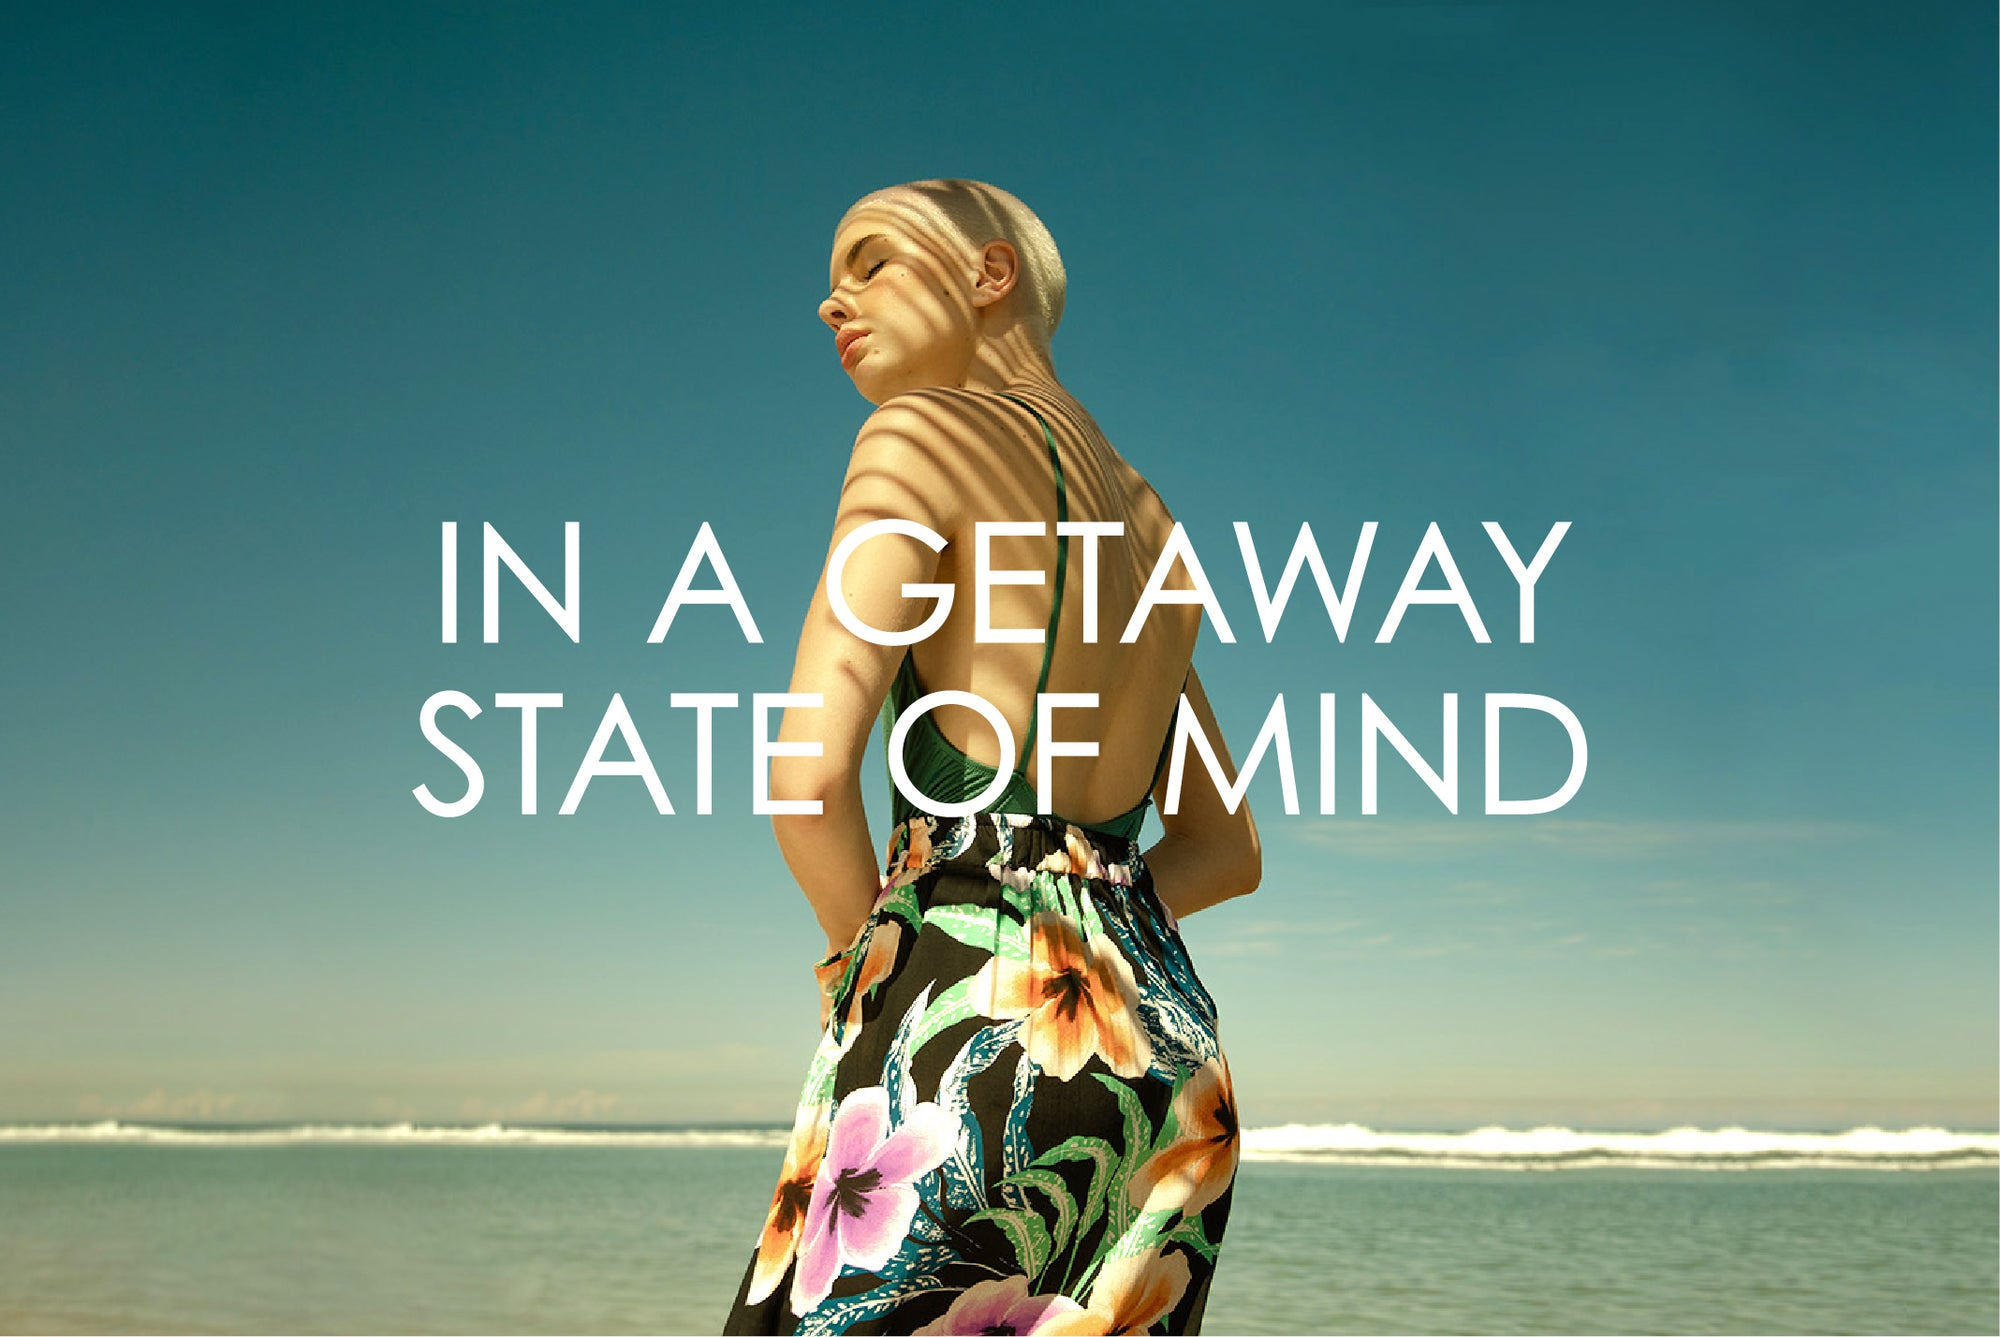 Collection: In a Getaway State of Mind